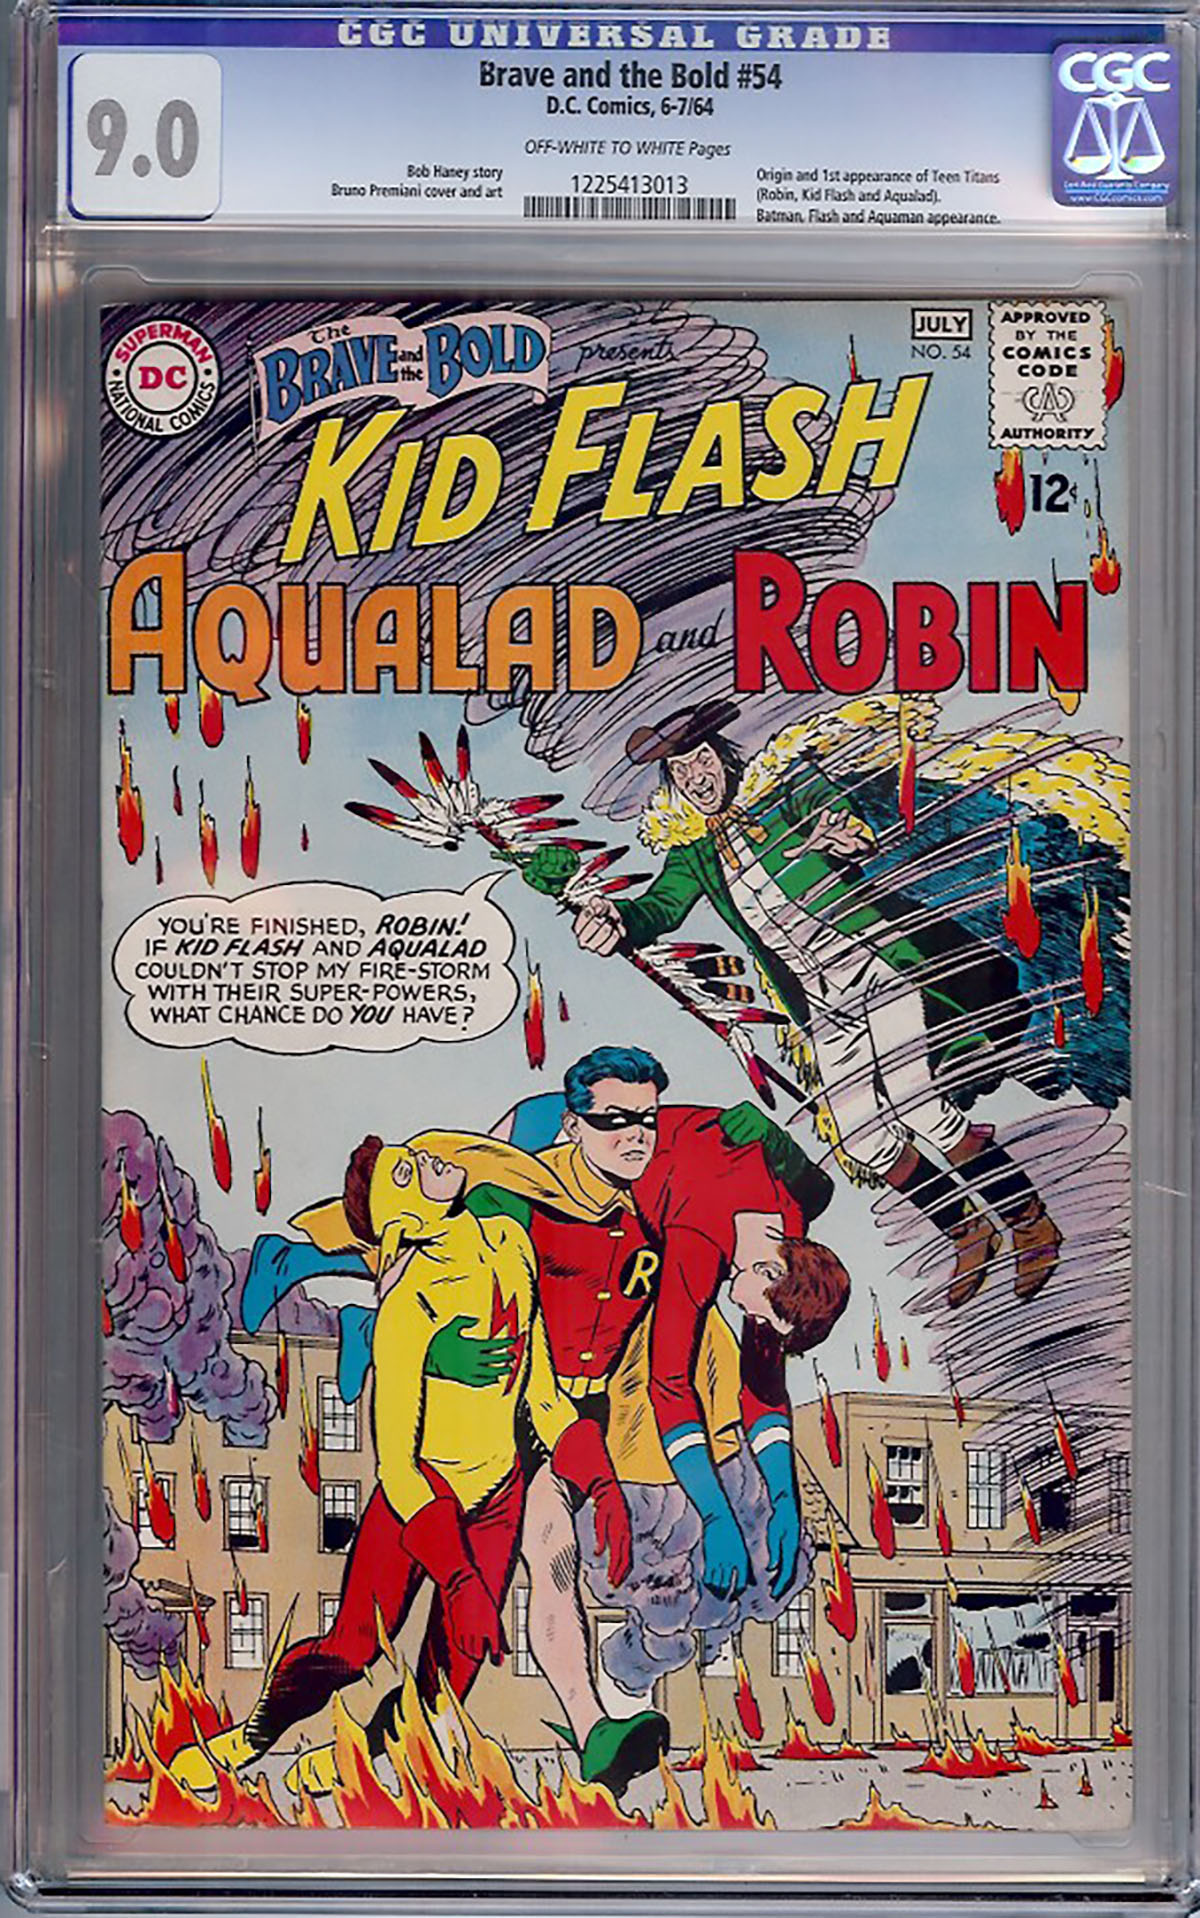 Brave and the Bold #54 CGC 9.0 ow/w